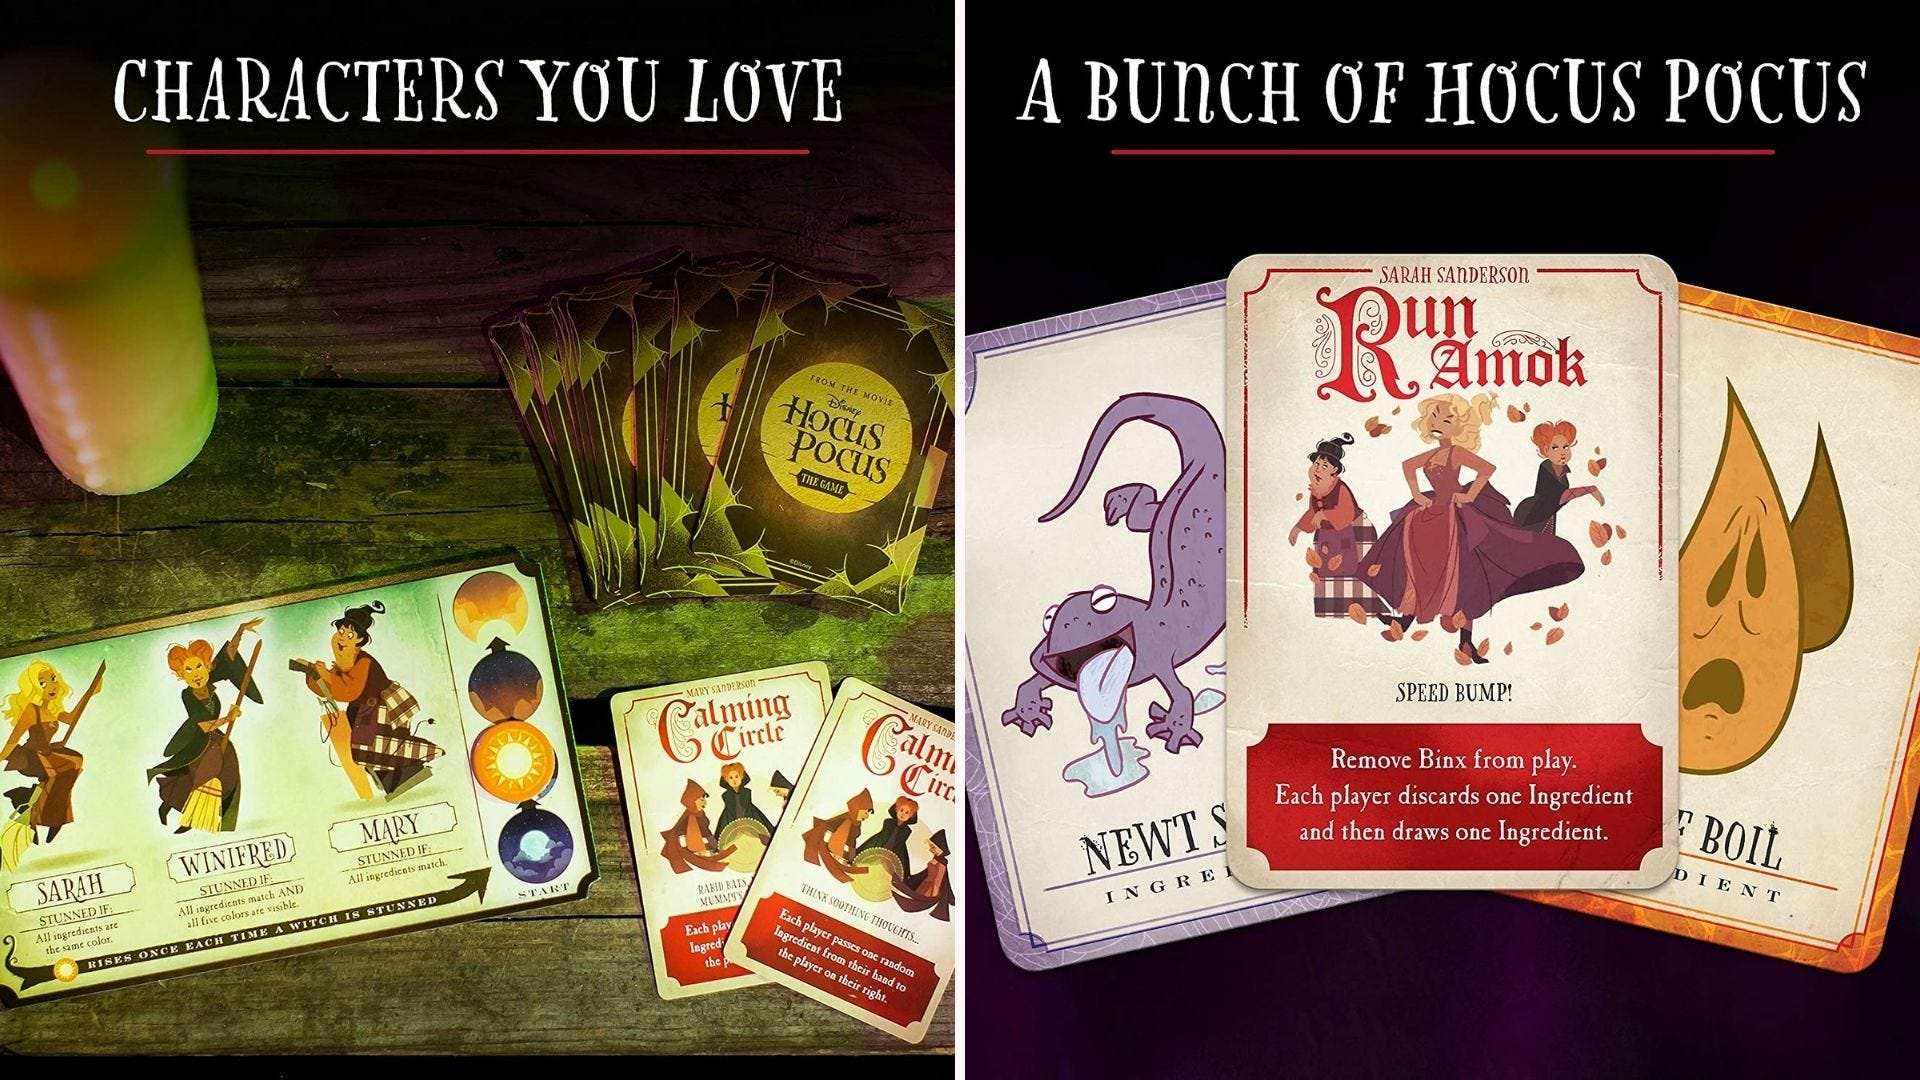 Hocus Pocus themed cards for a board and card game